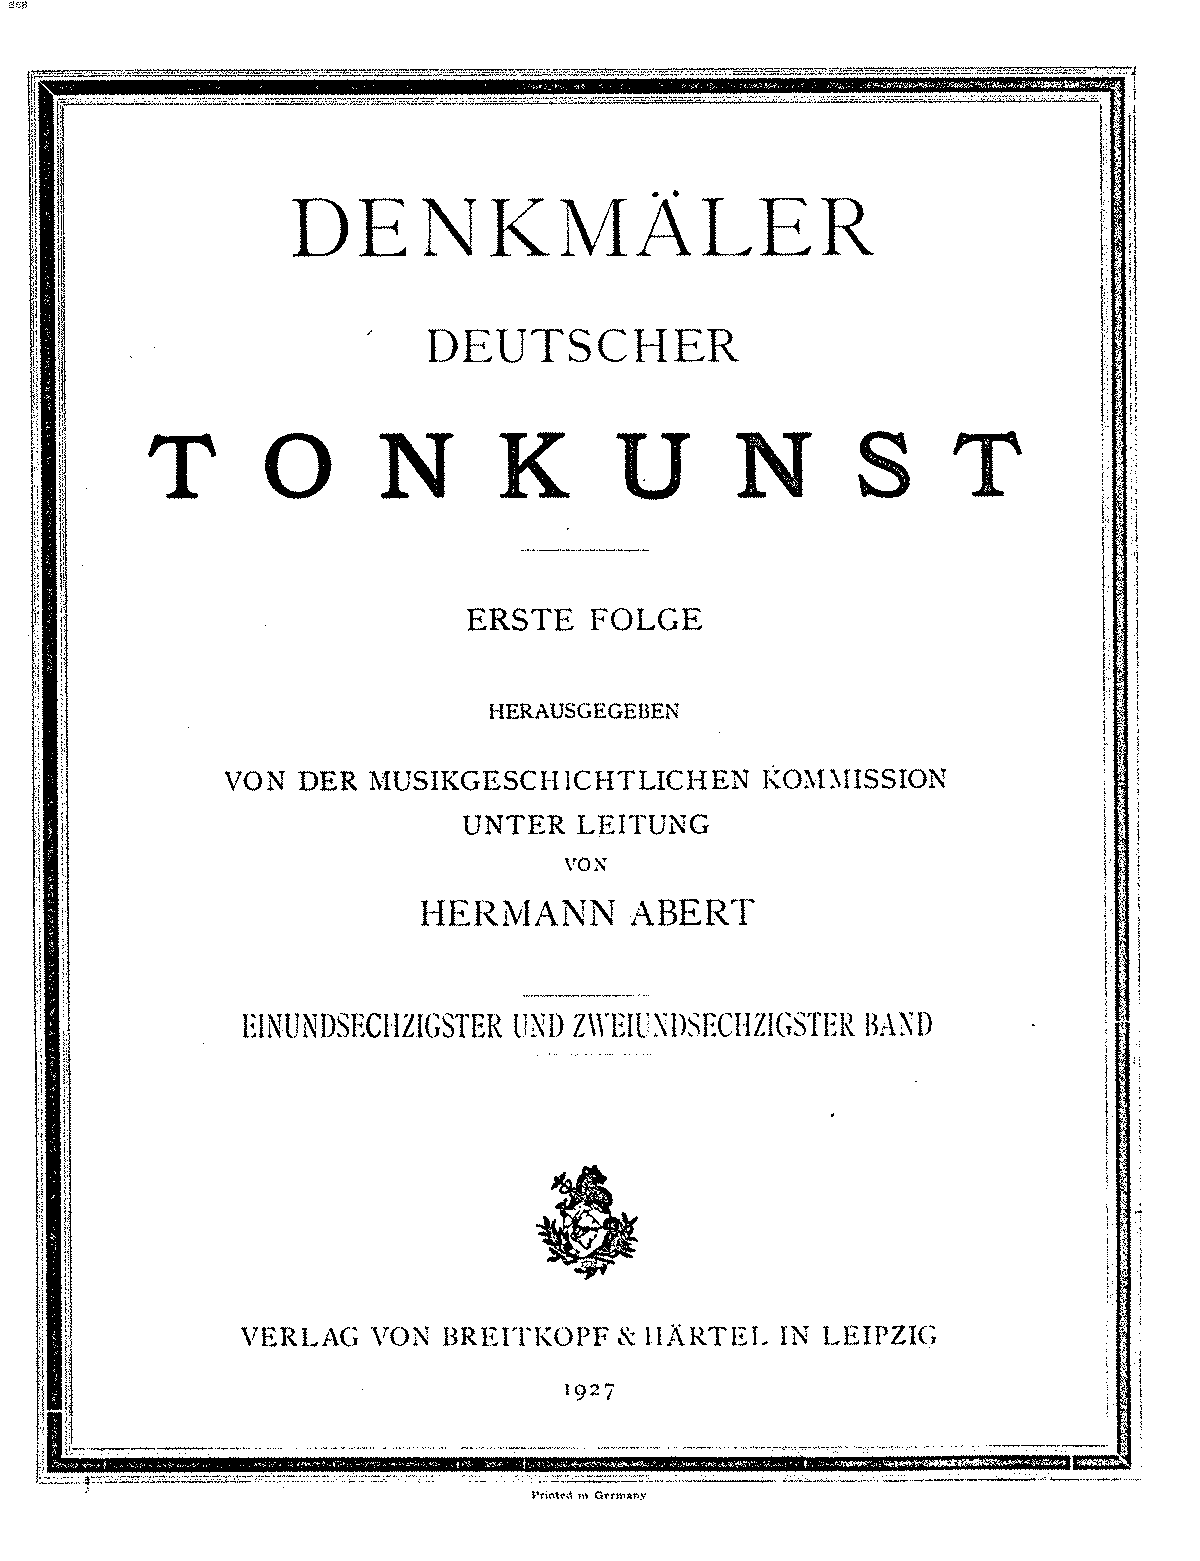 PMLP98018-DDT061,062 - Telemann, Georg Philipp - Tafelmusik. 1st production.pdf